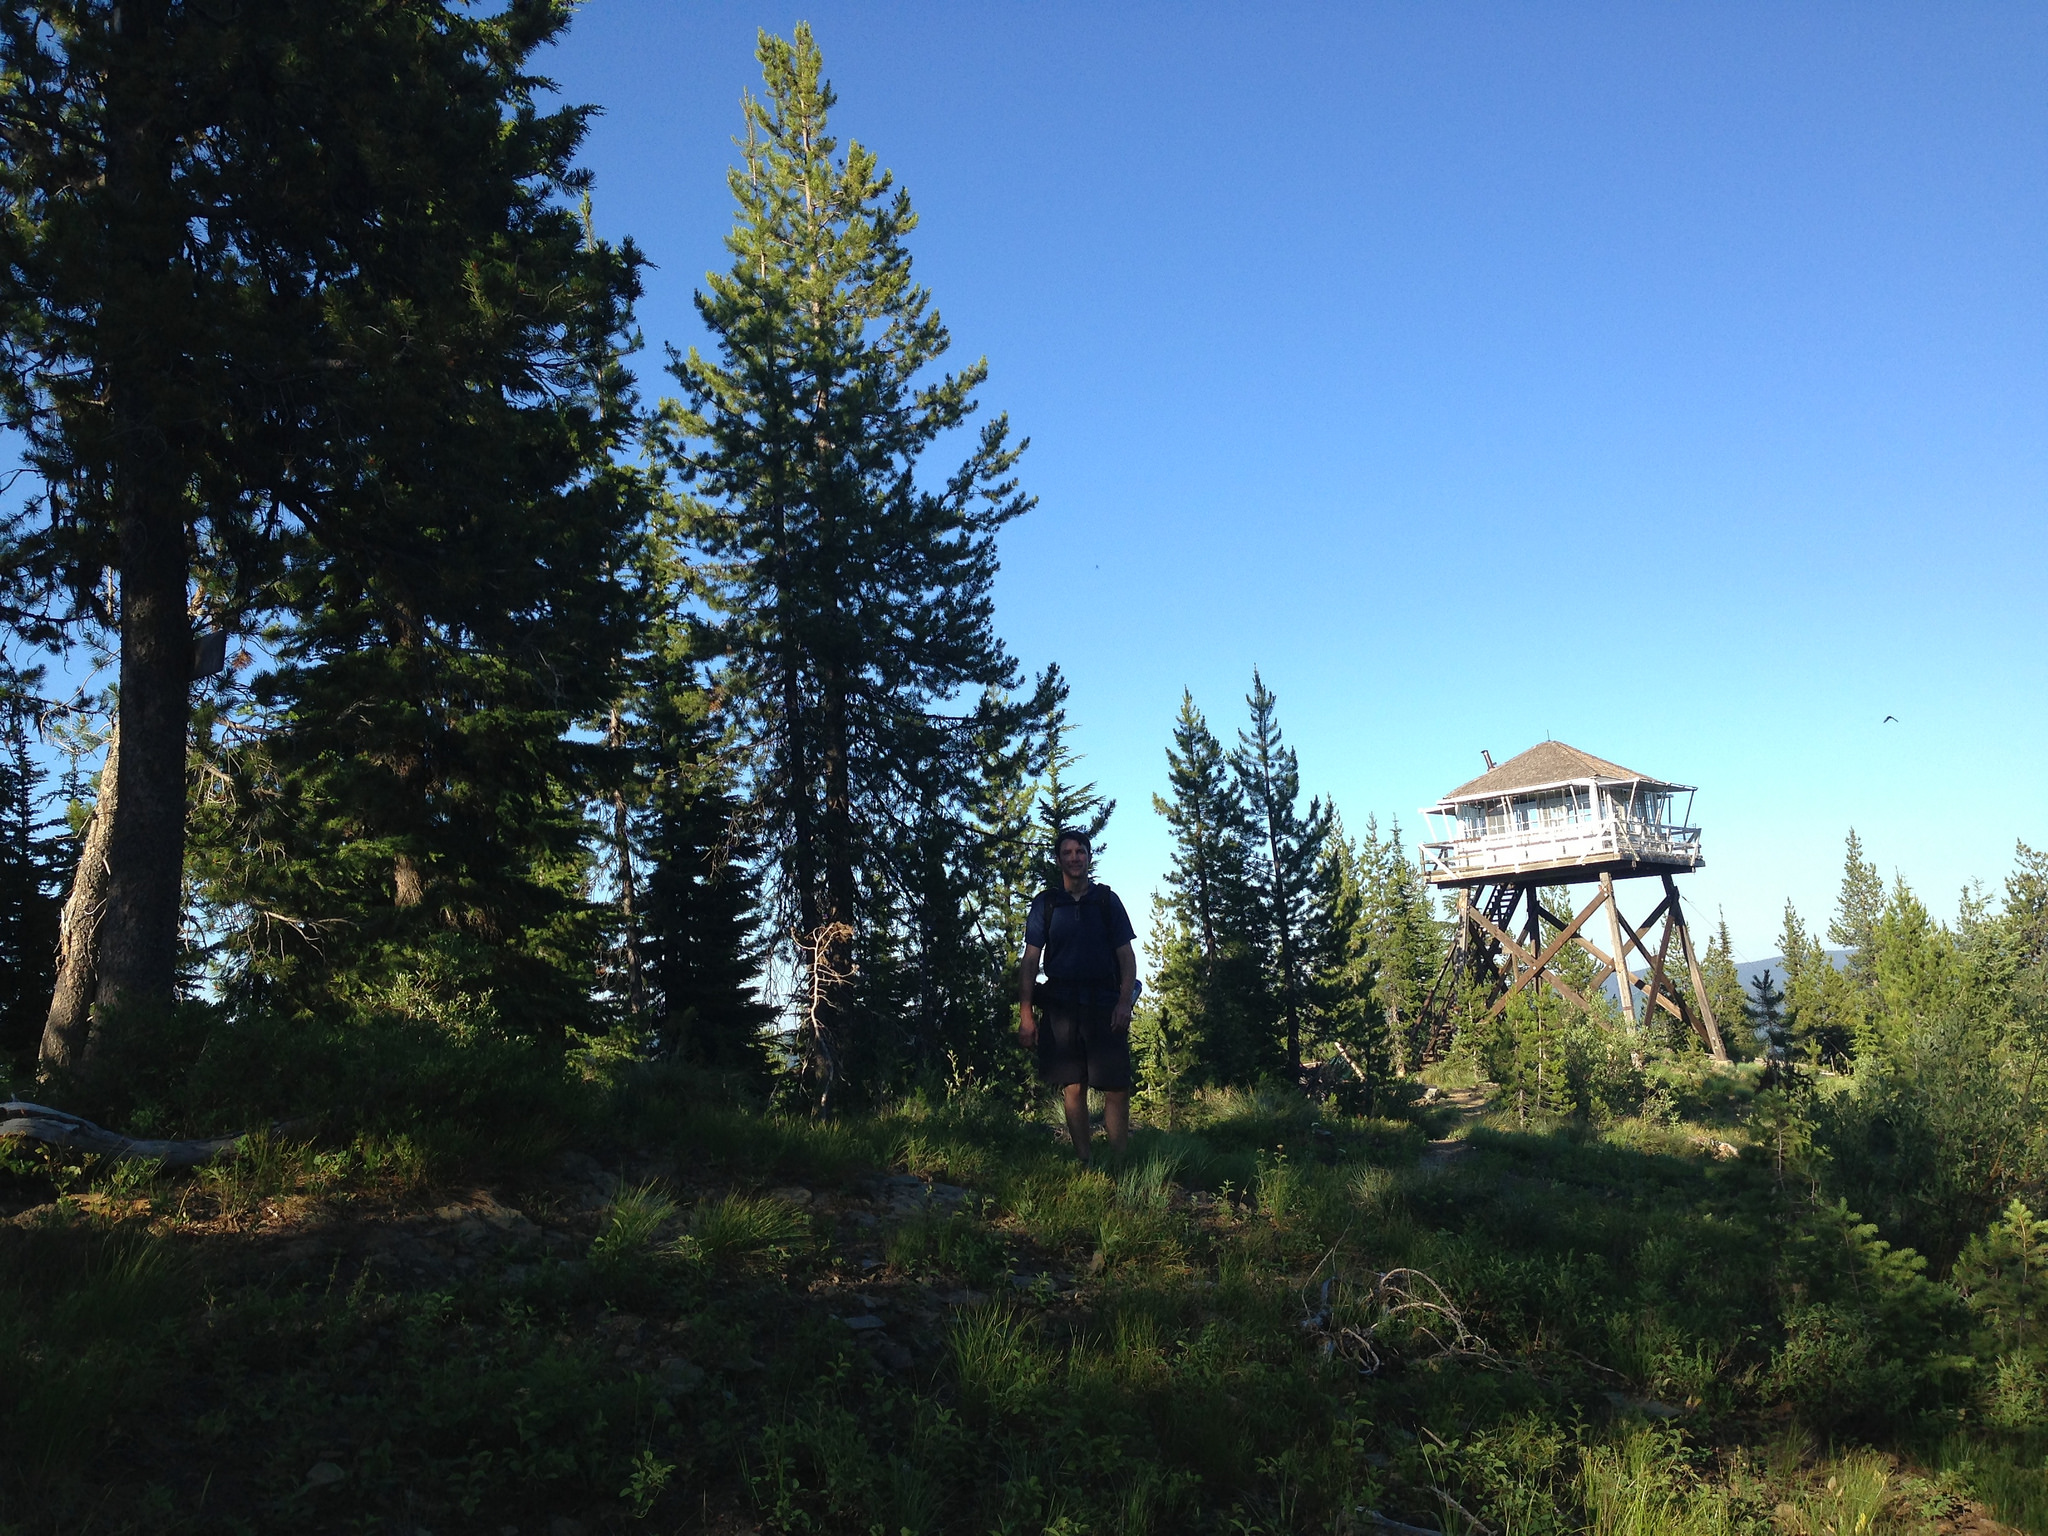 Camping In Fire Lookout Towers In Idaho